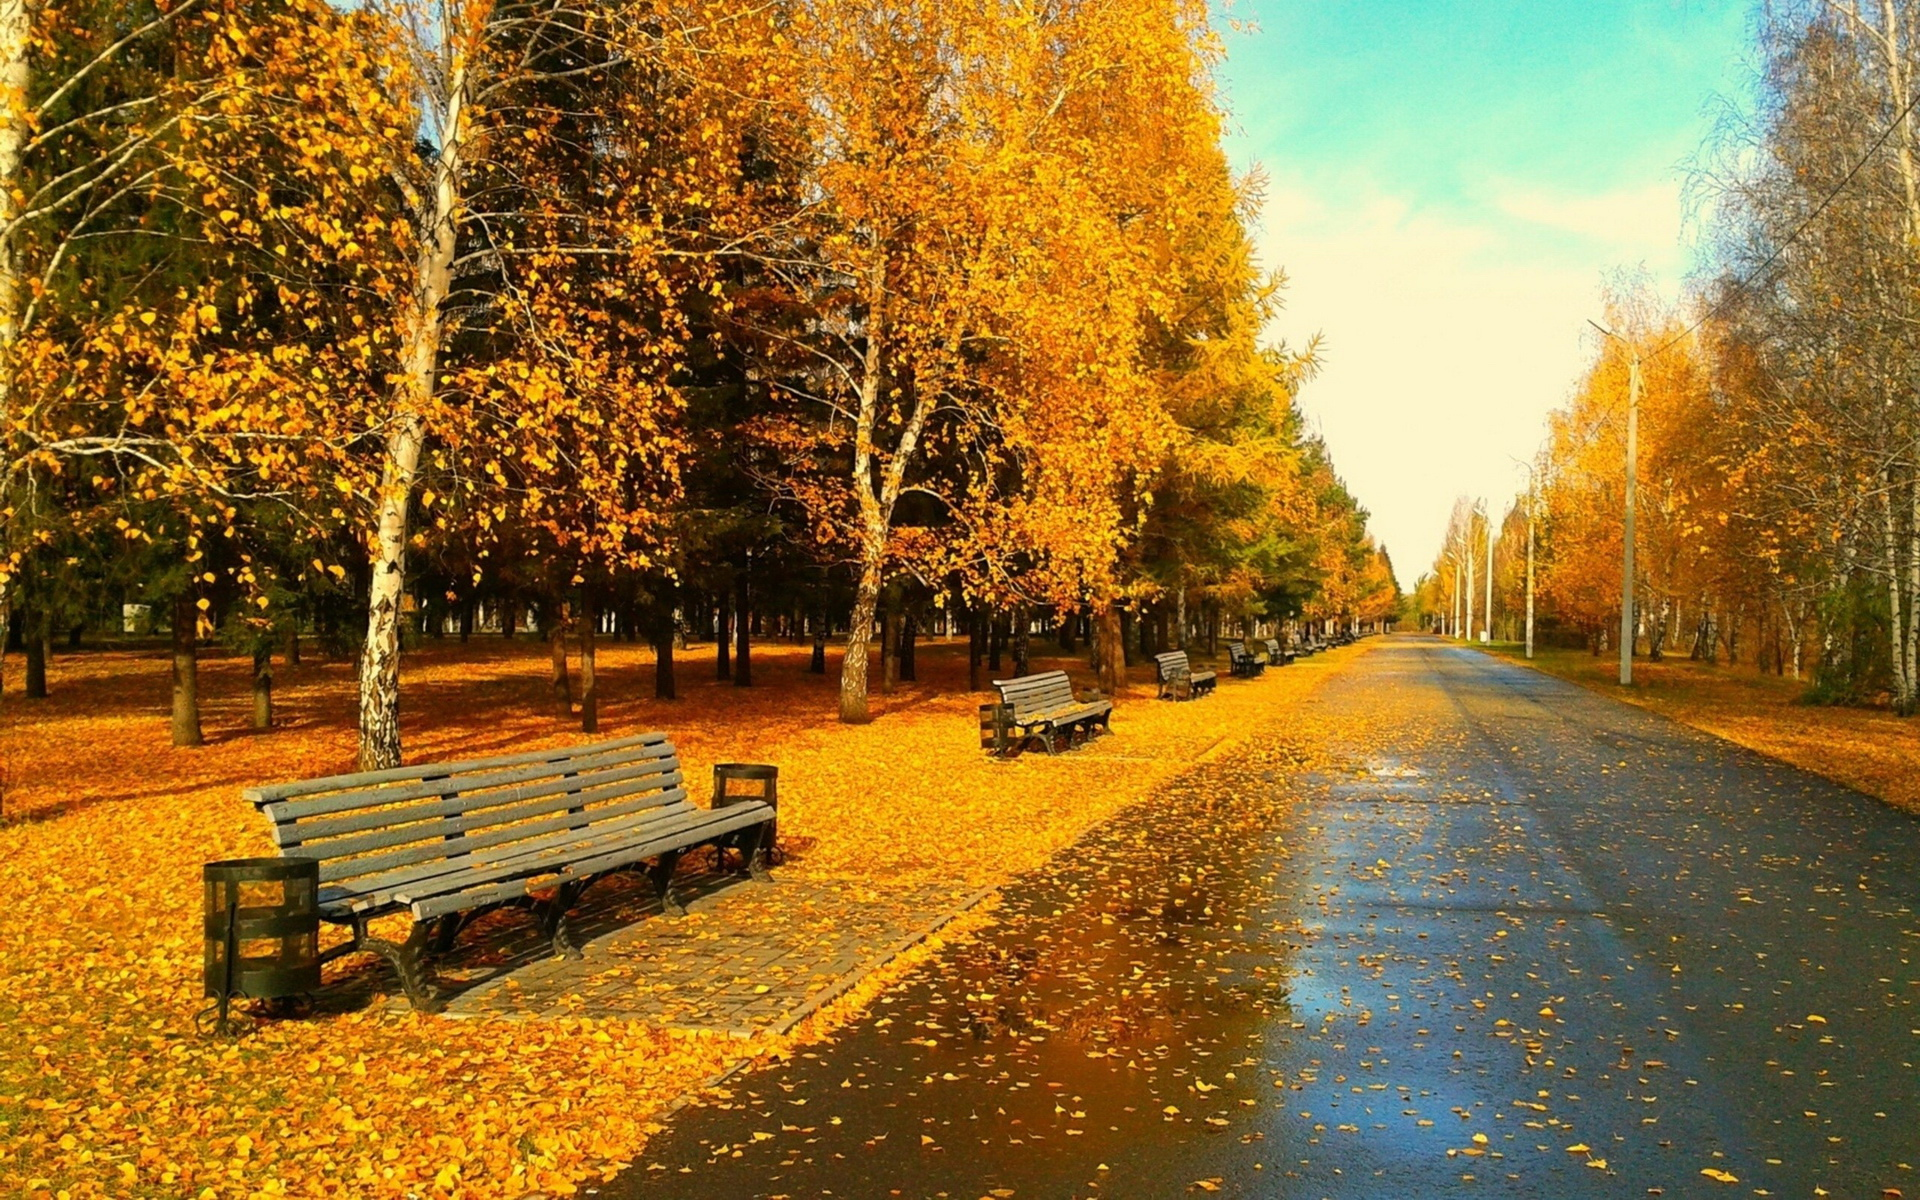 Autumn park road